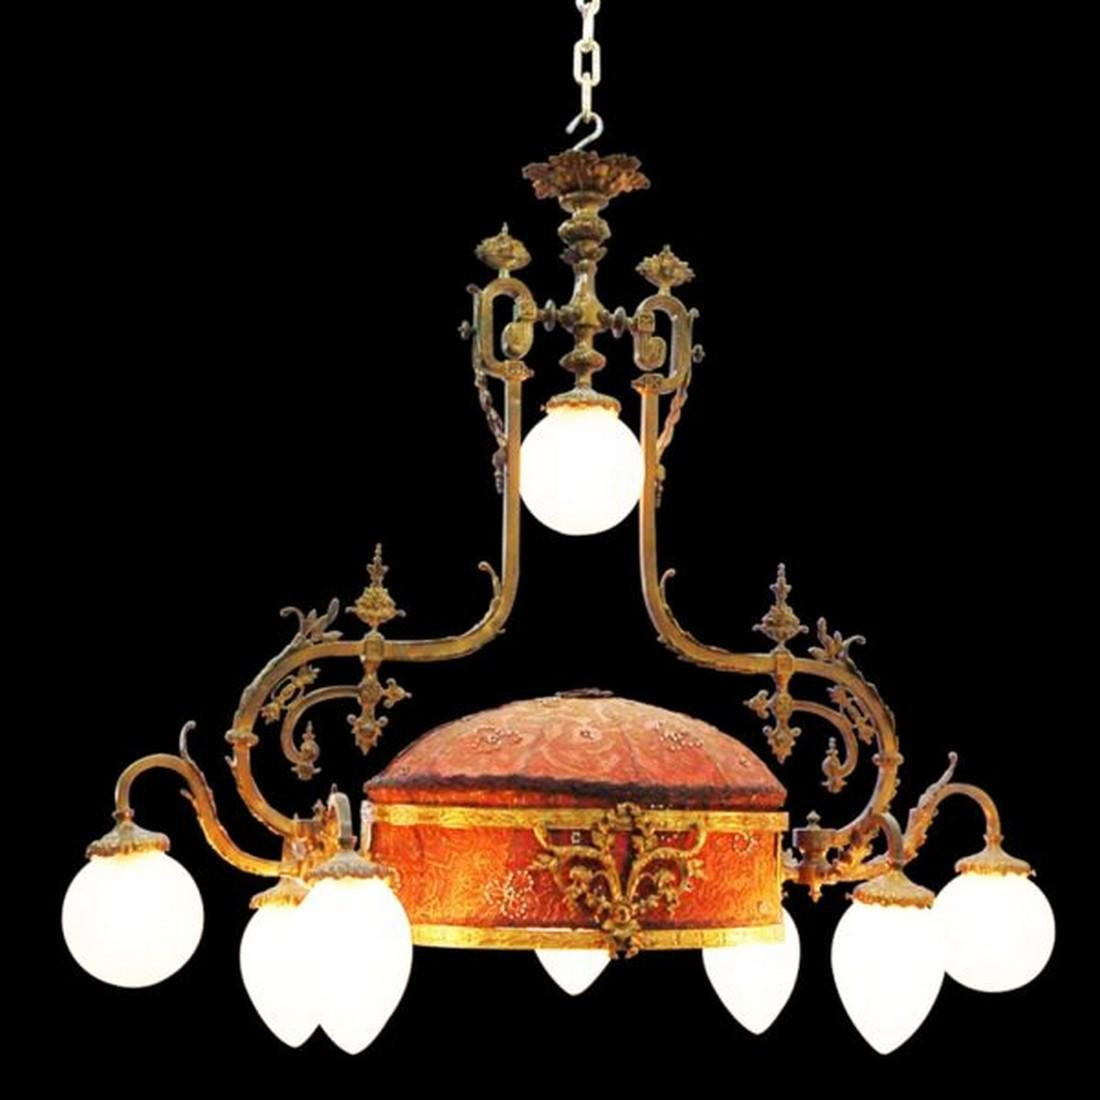 Antique 19th C. French Rococo Chandelier